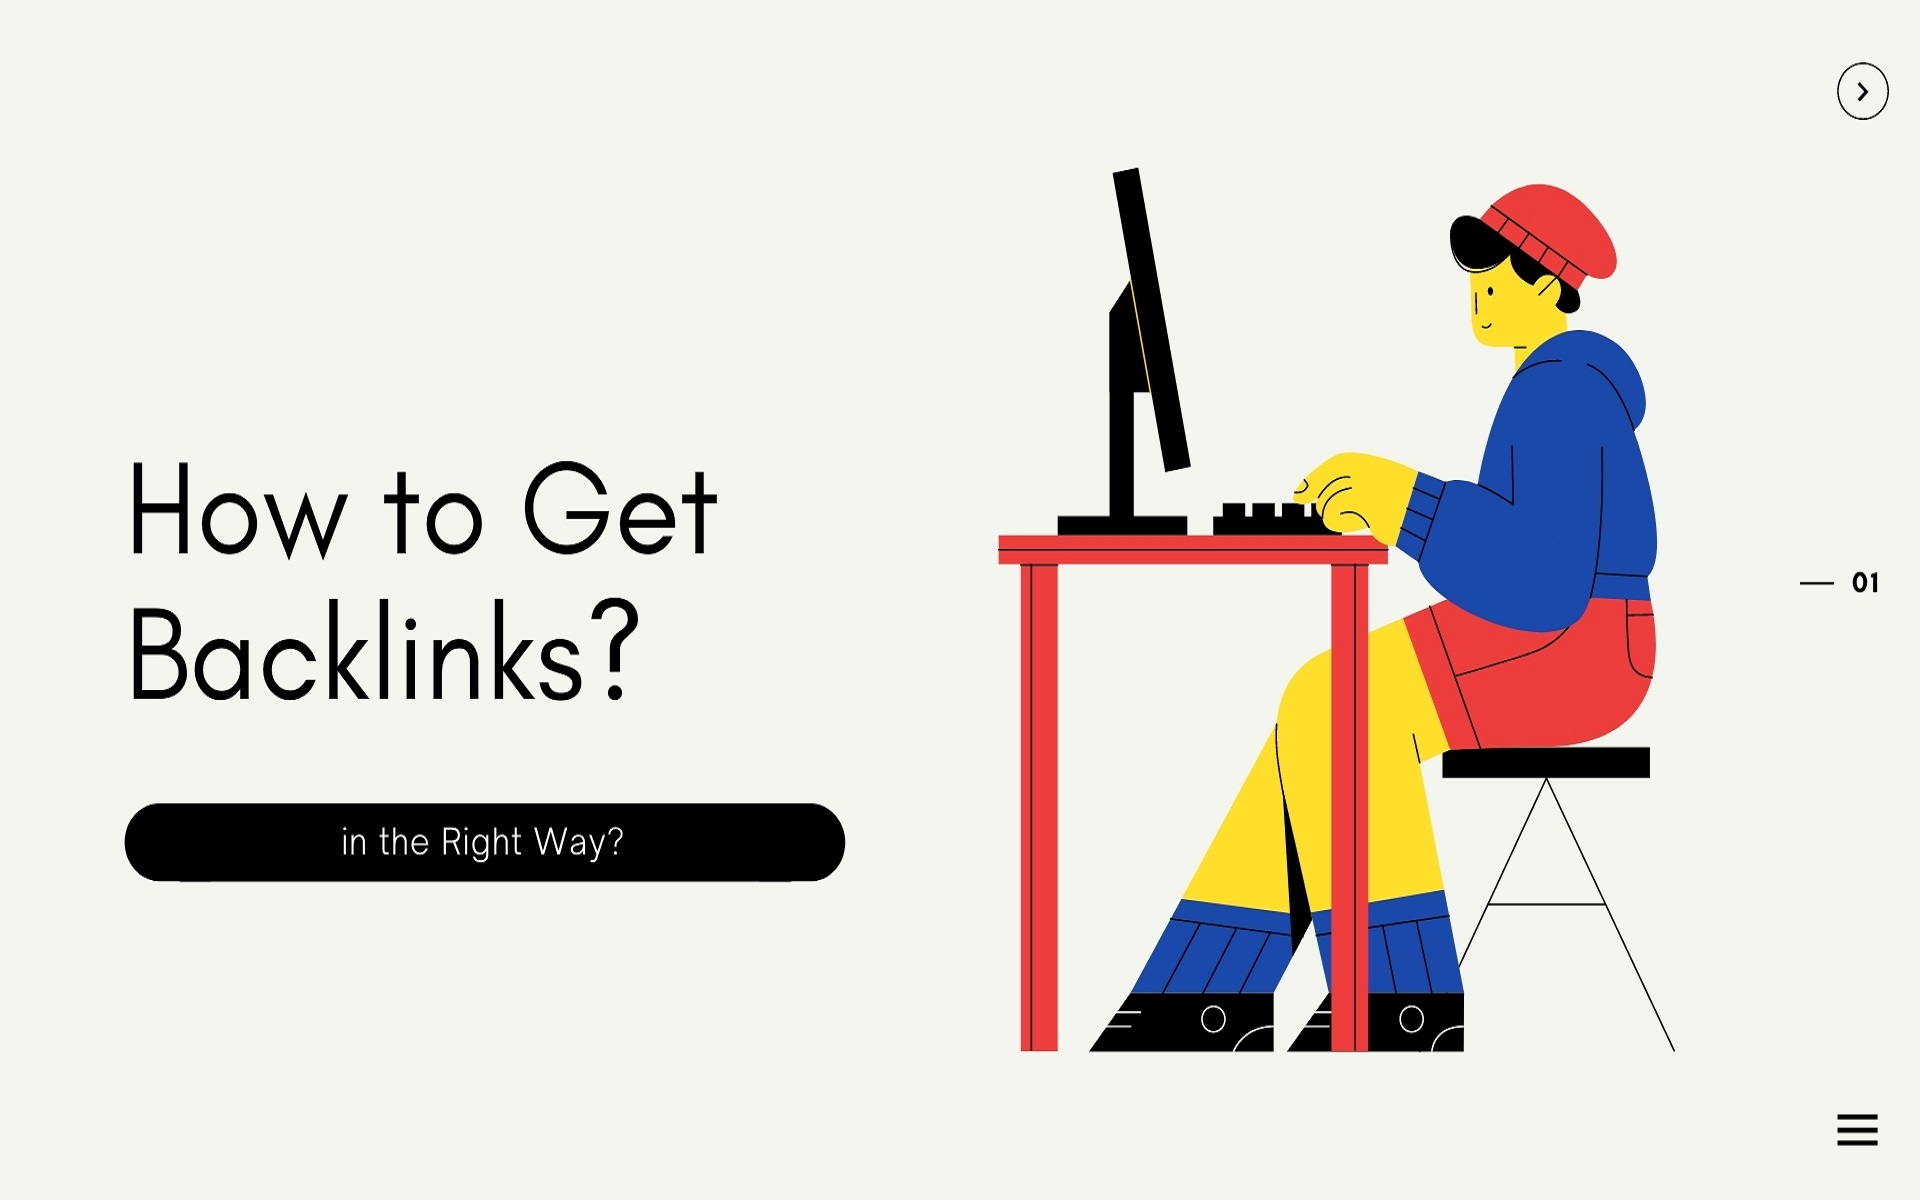 How to Get Backlinks and Rank High in Search Engines